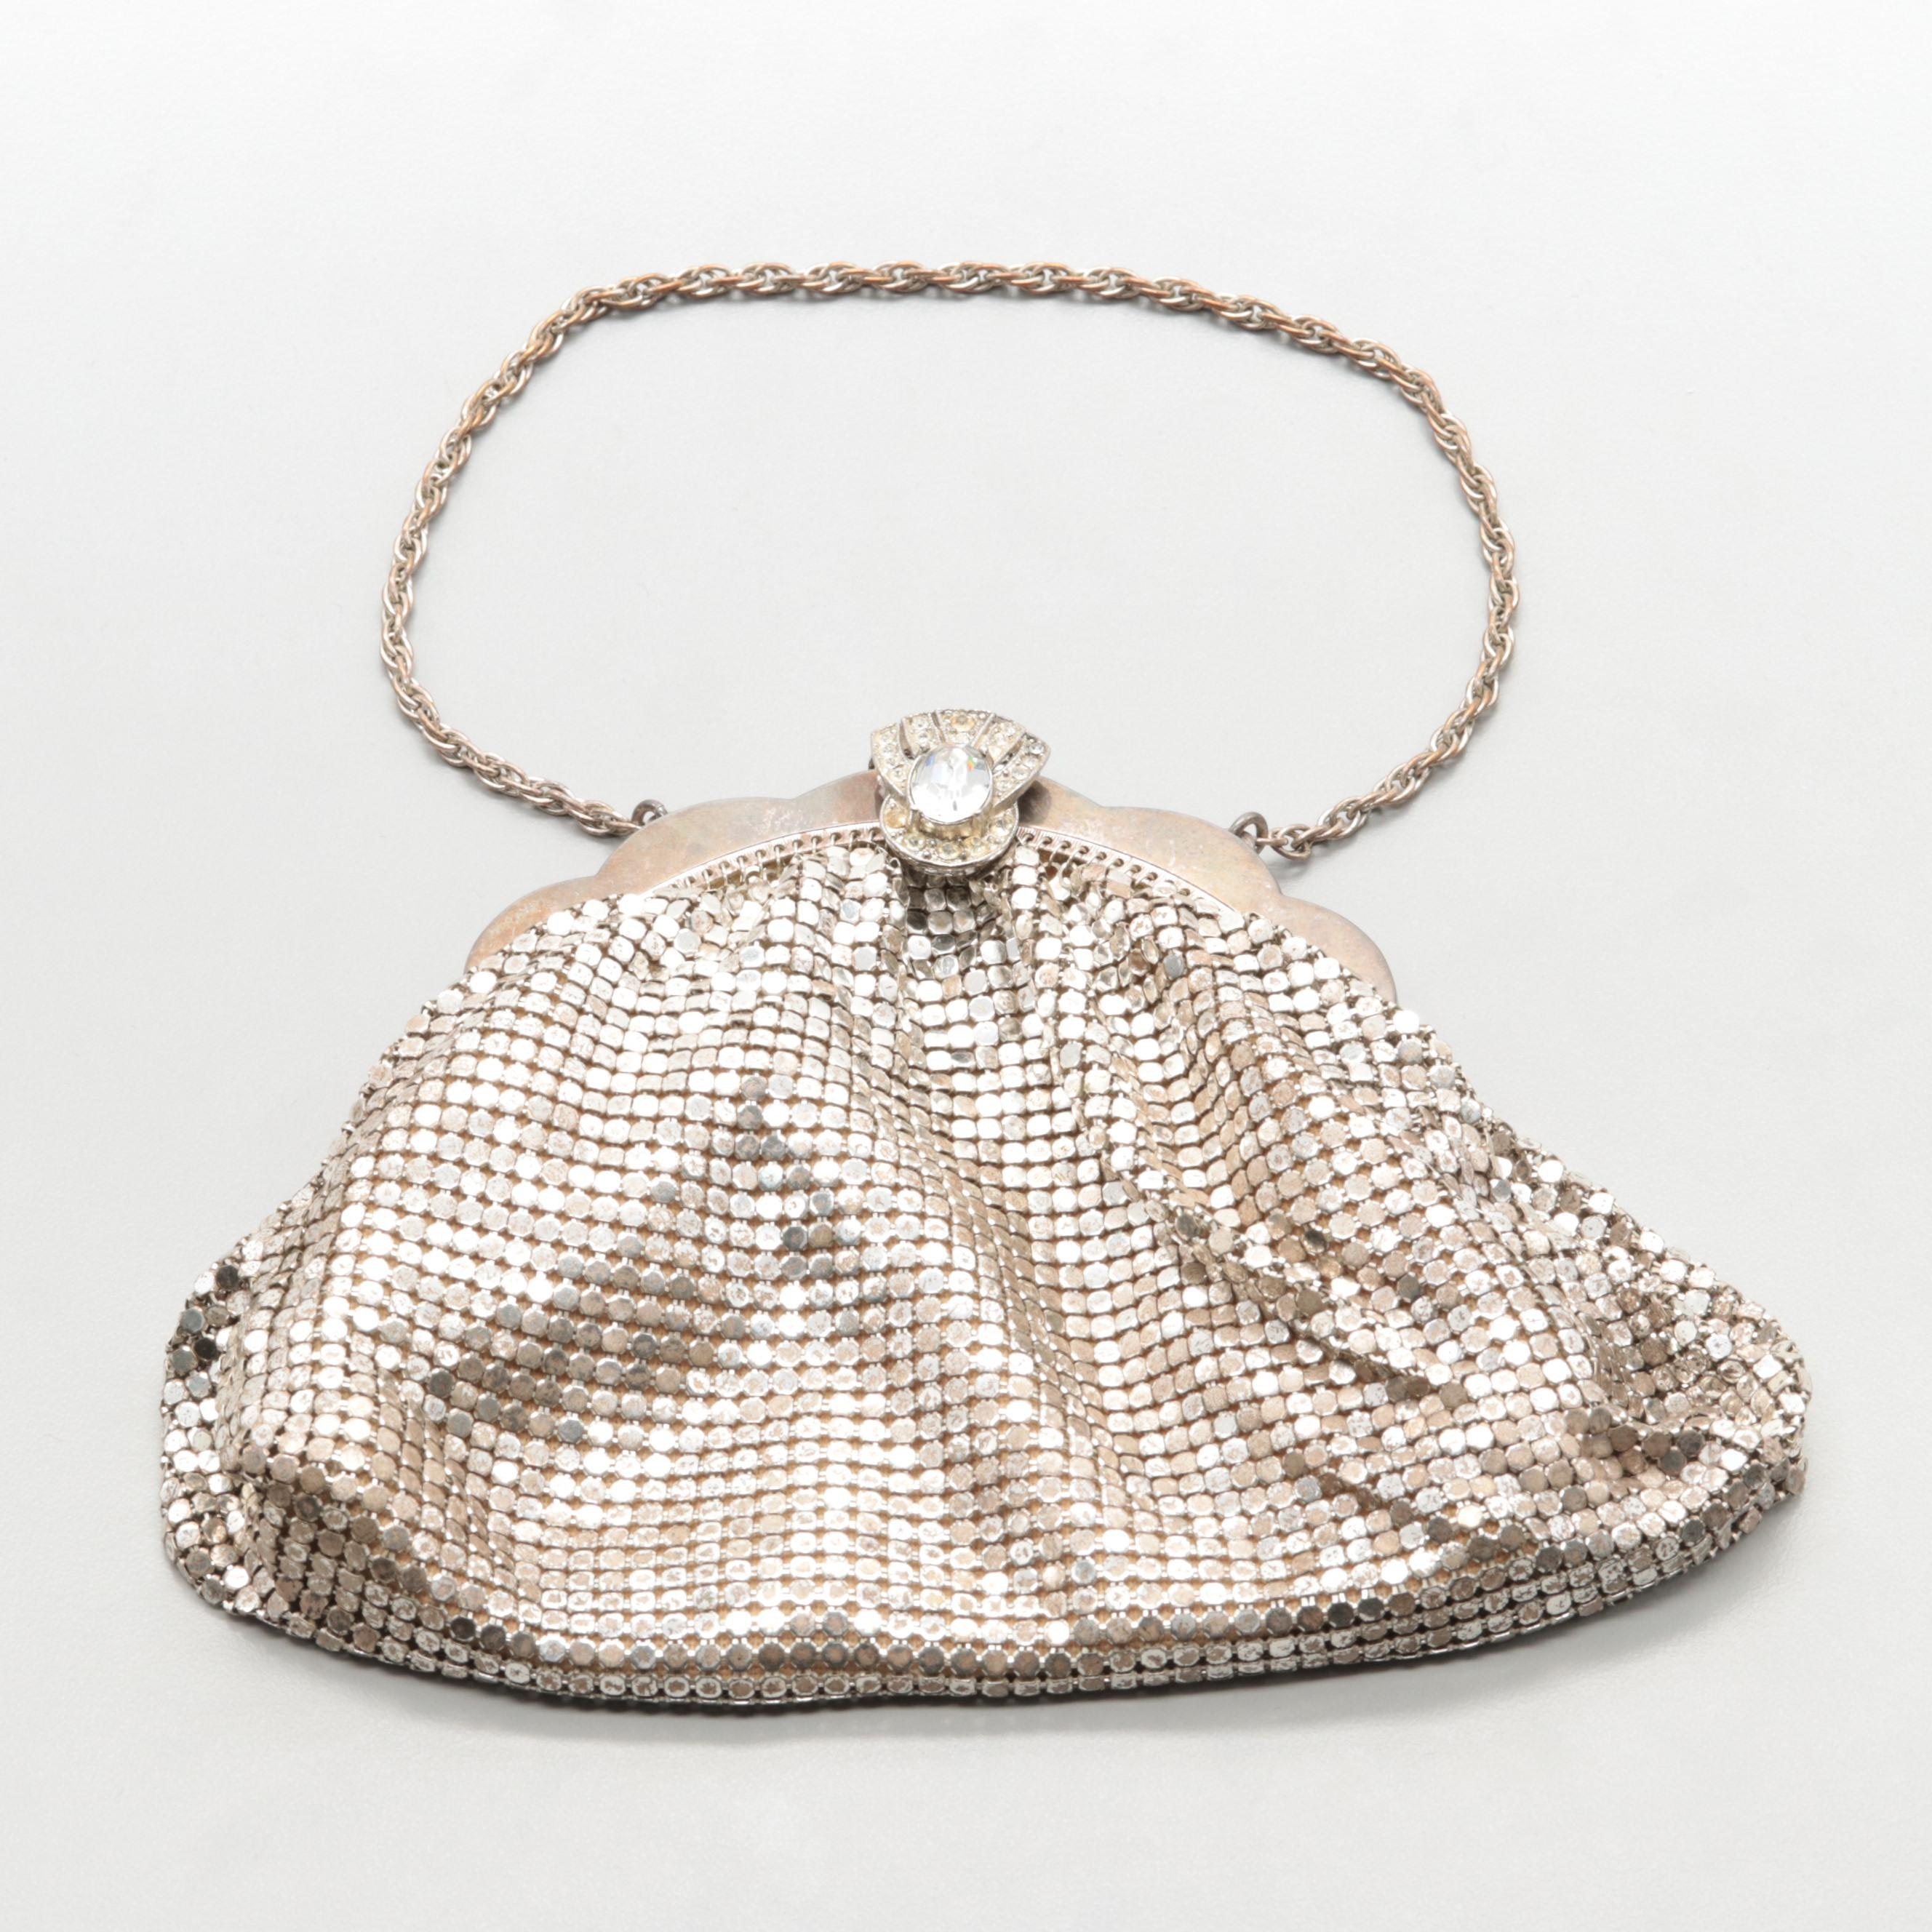 Vintage Whiting and Davis Silver Tone Mesh Evening Bag with Foil Back Glass